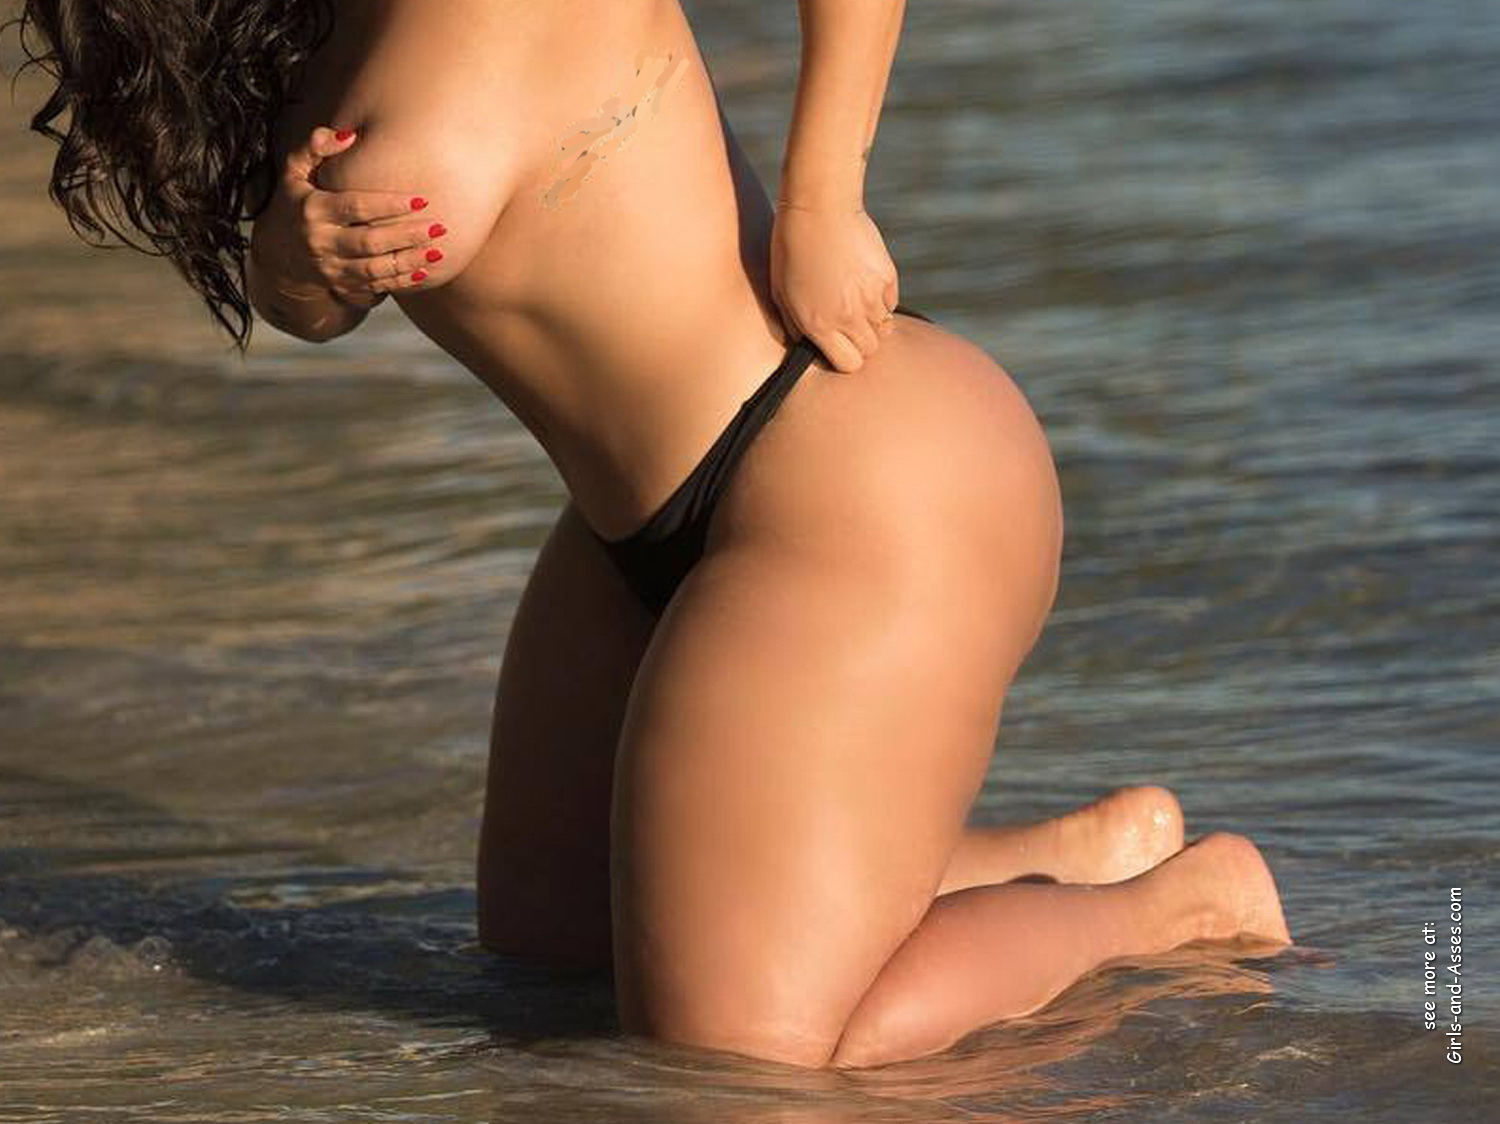 naked girl with big ass in a river picture 05038